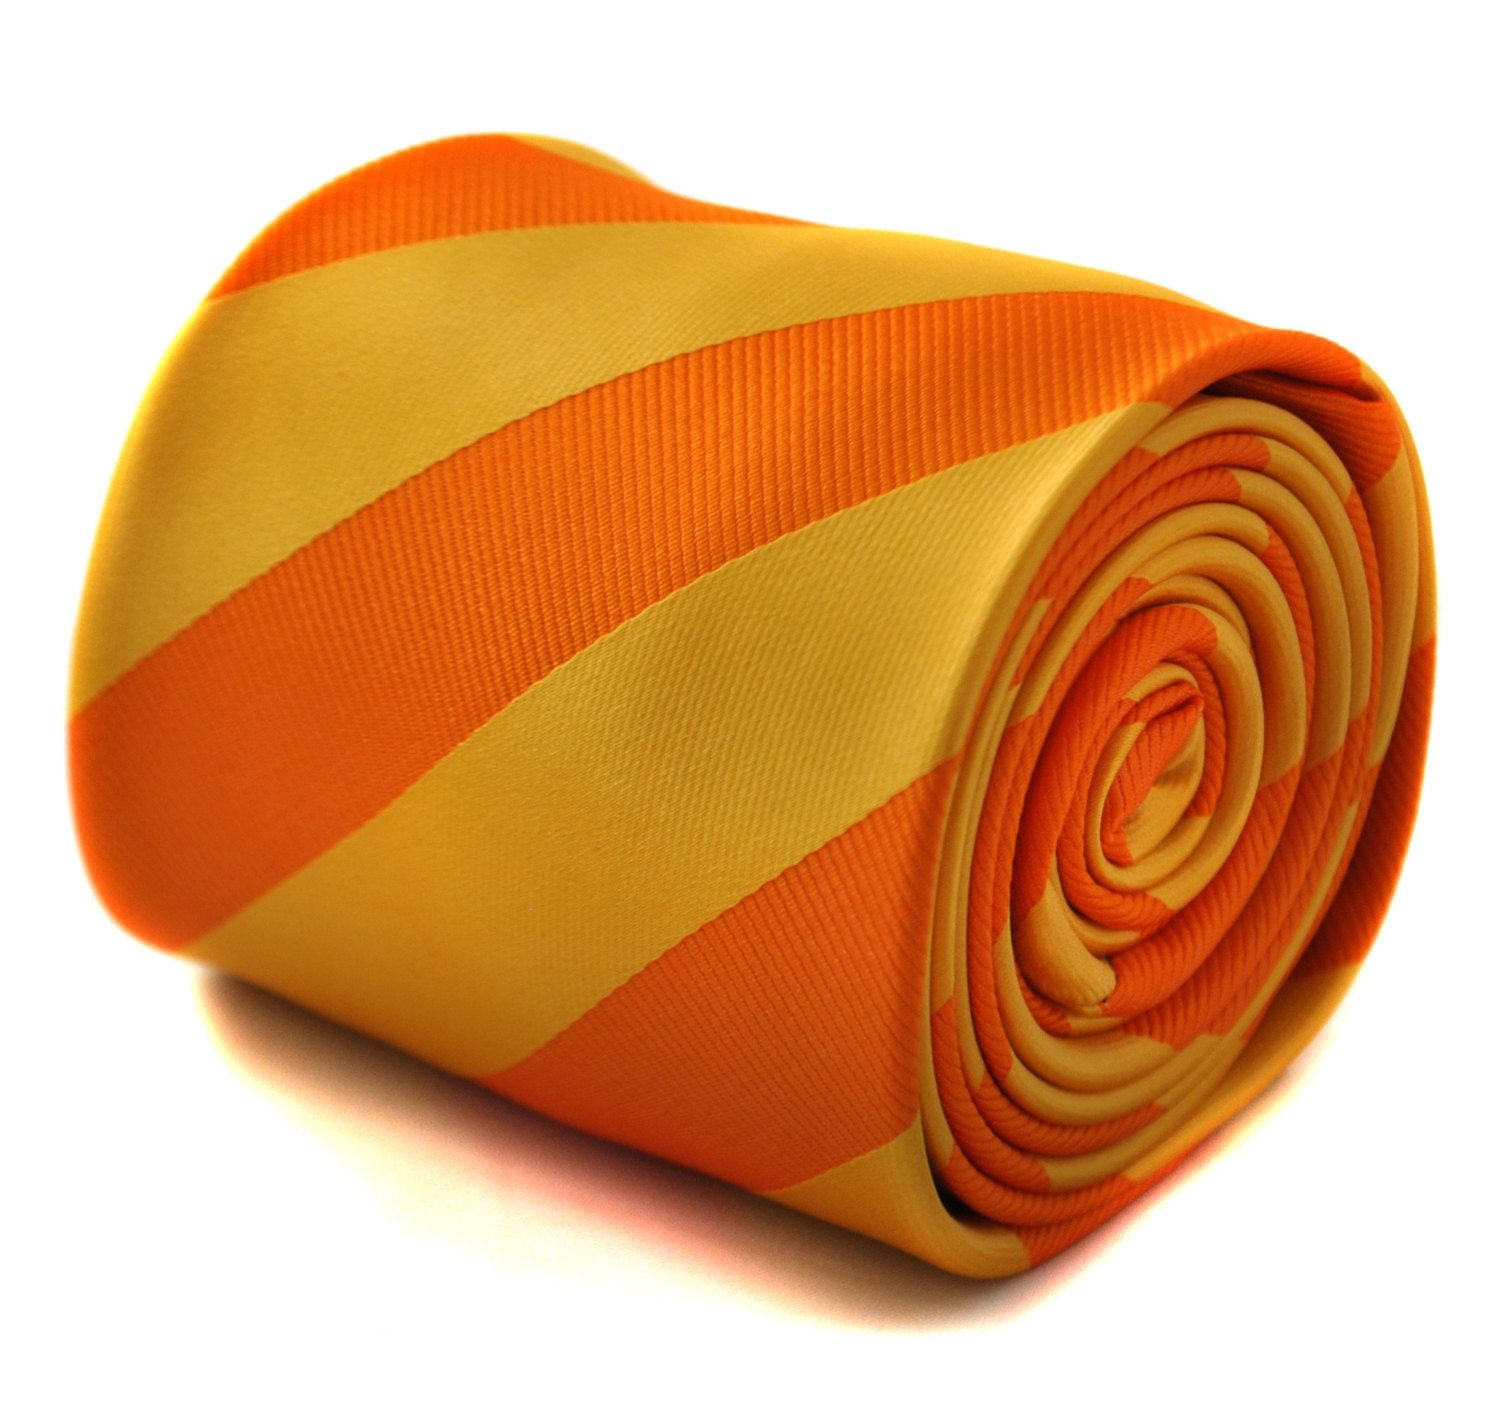 Yellow and orange barber striped tie with signature floral design to the rear by